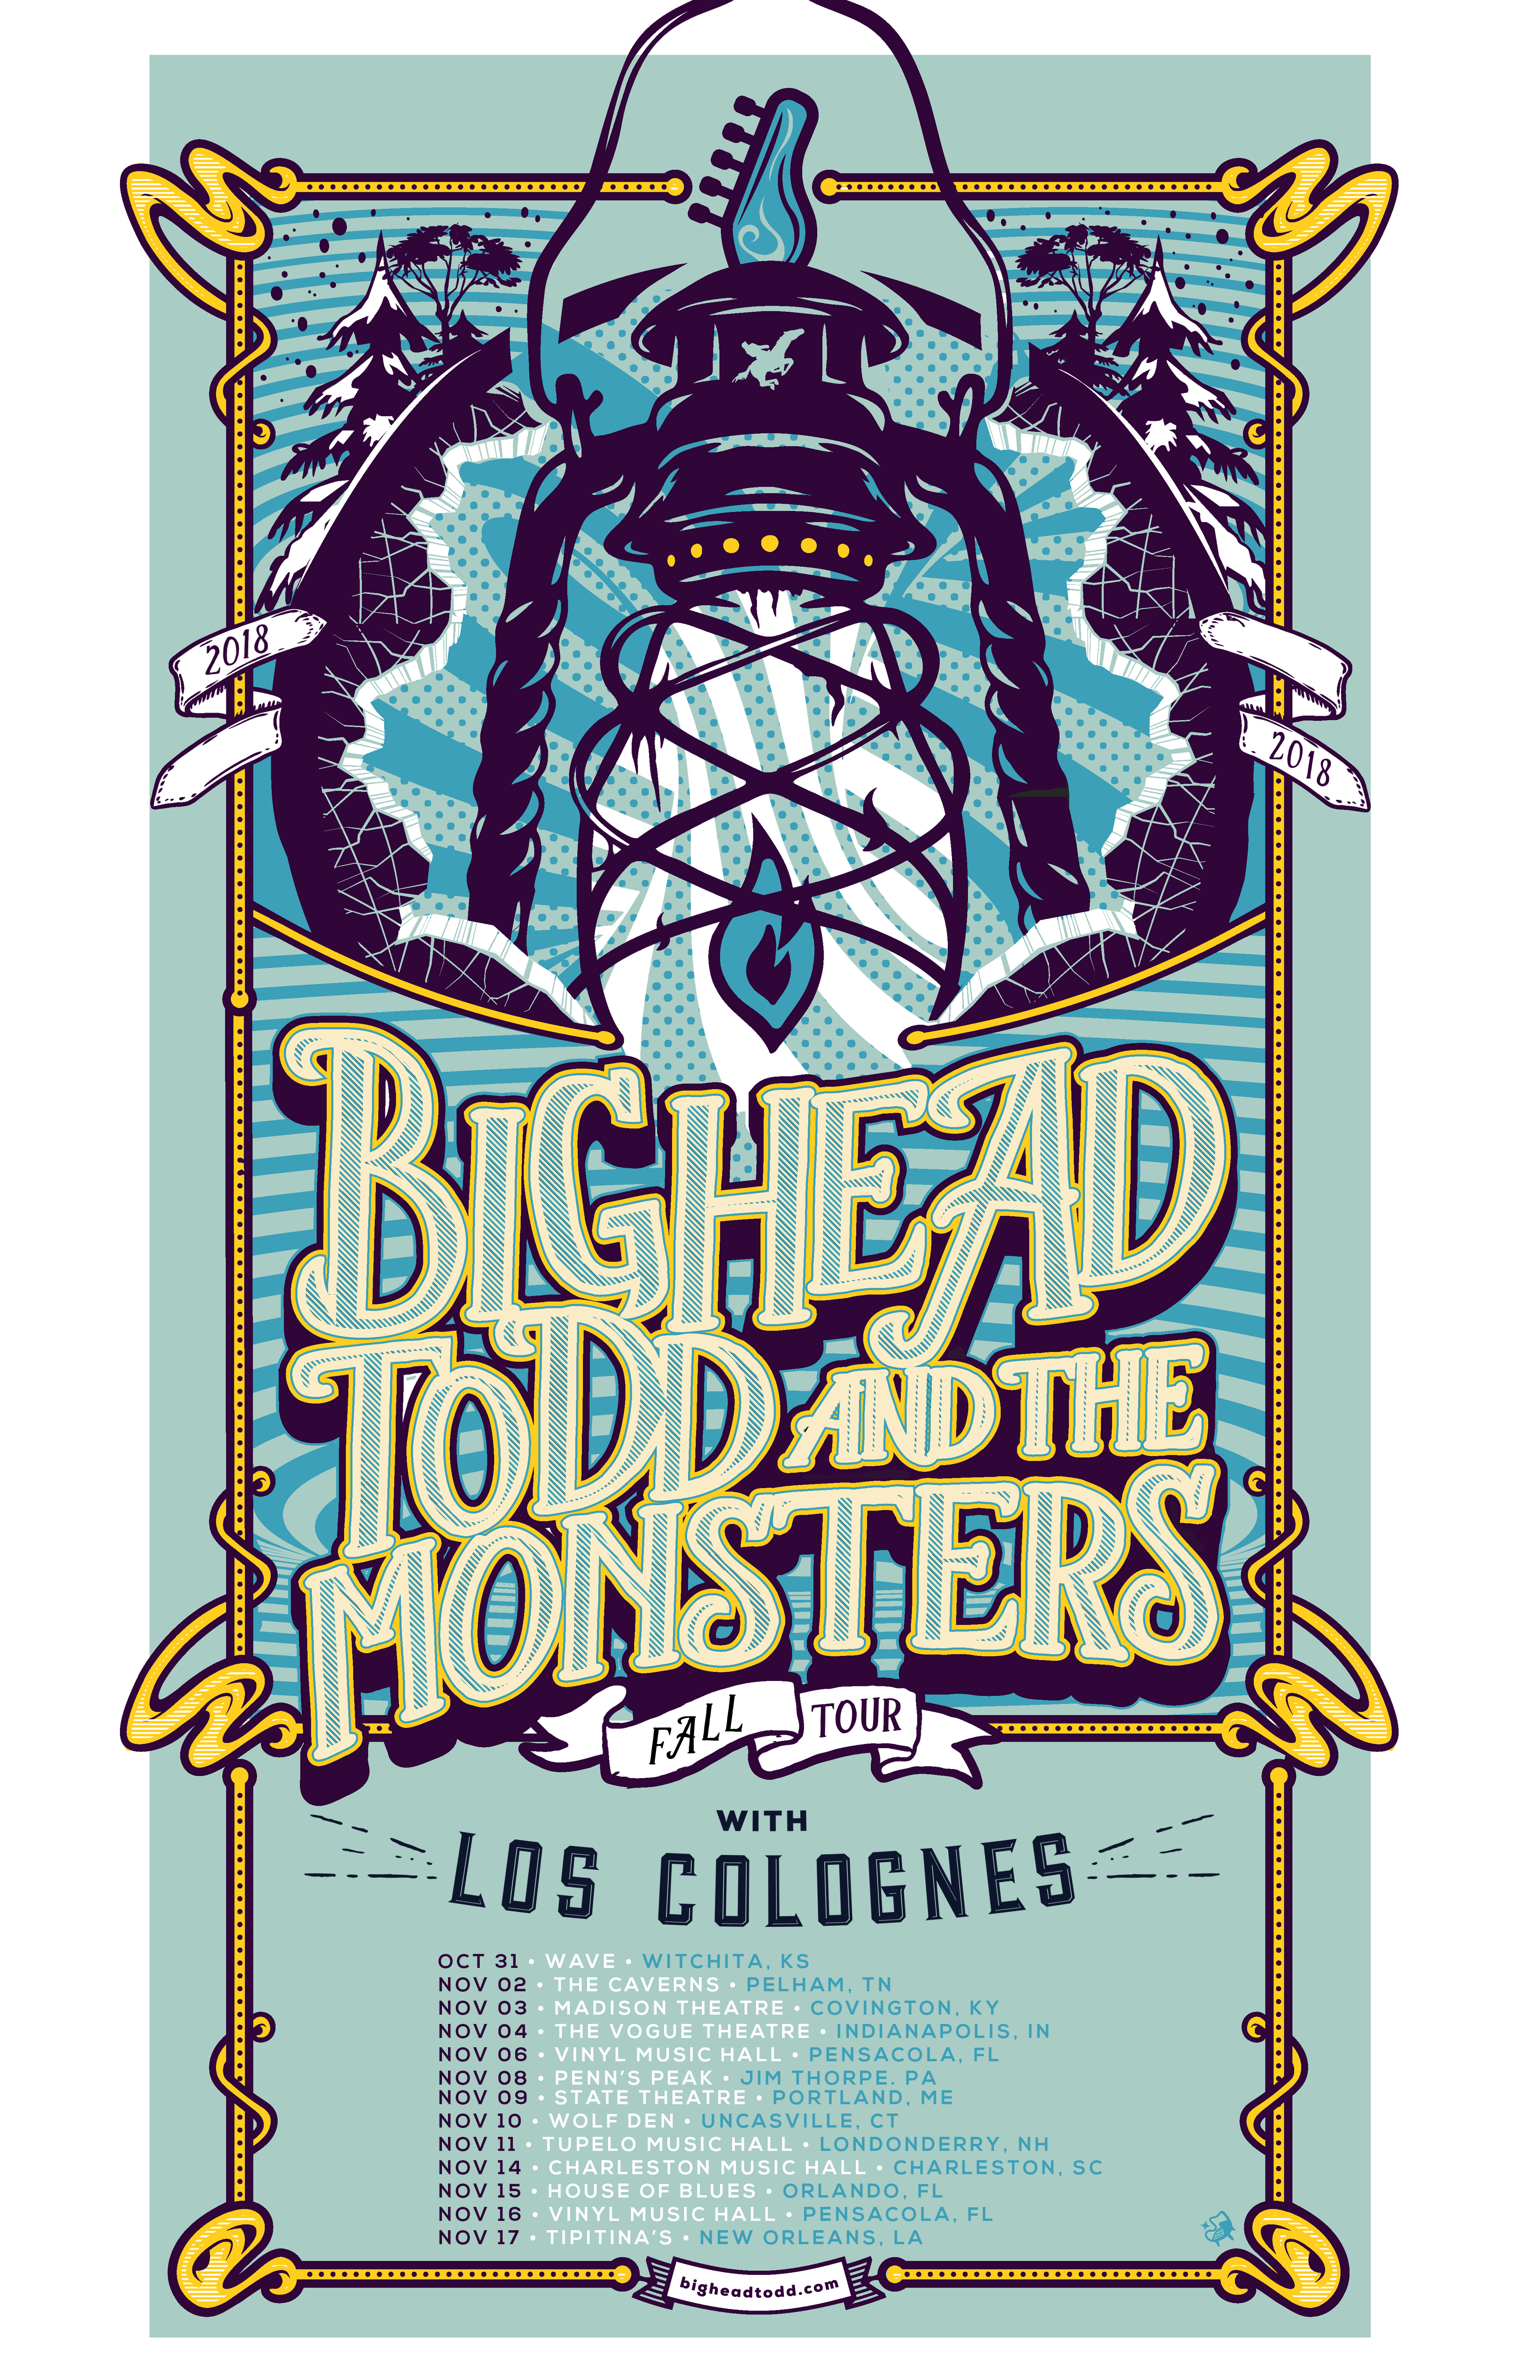 Big Head Todd announces their November fall tour with Los Colognes! Tickets on sale Friday 8/10 at 10am (local).